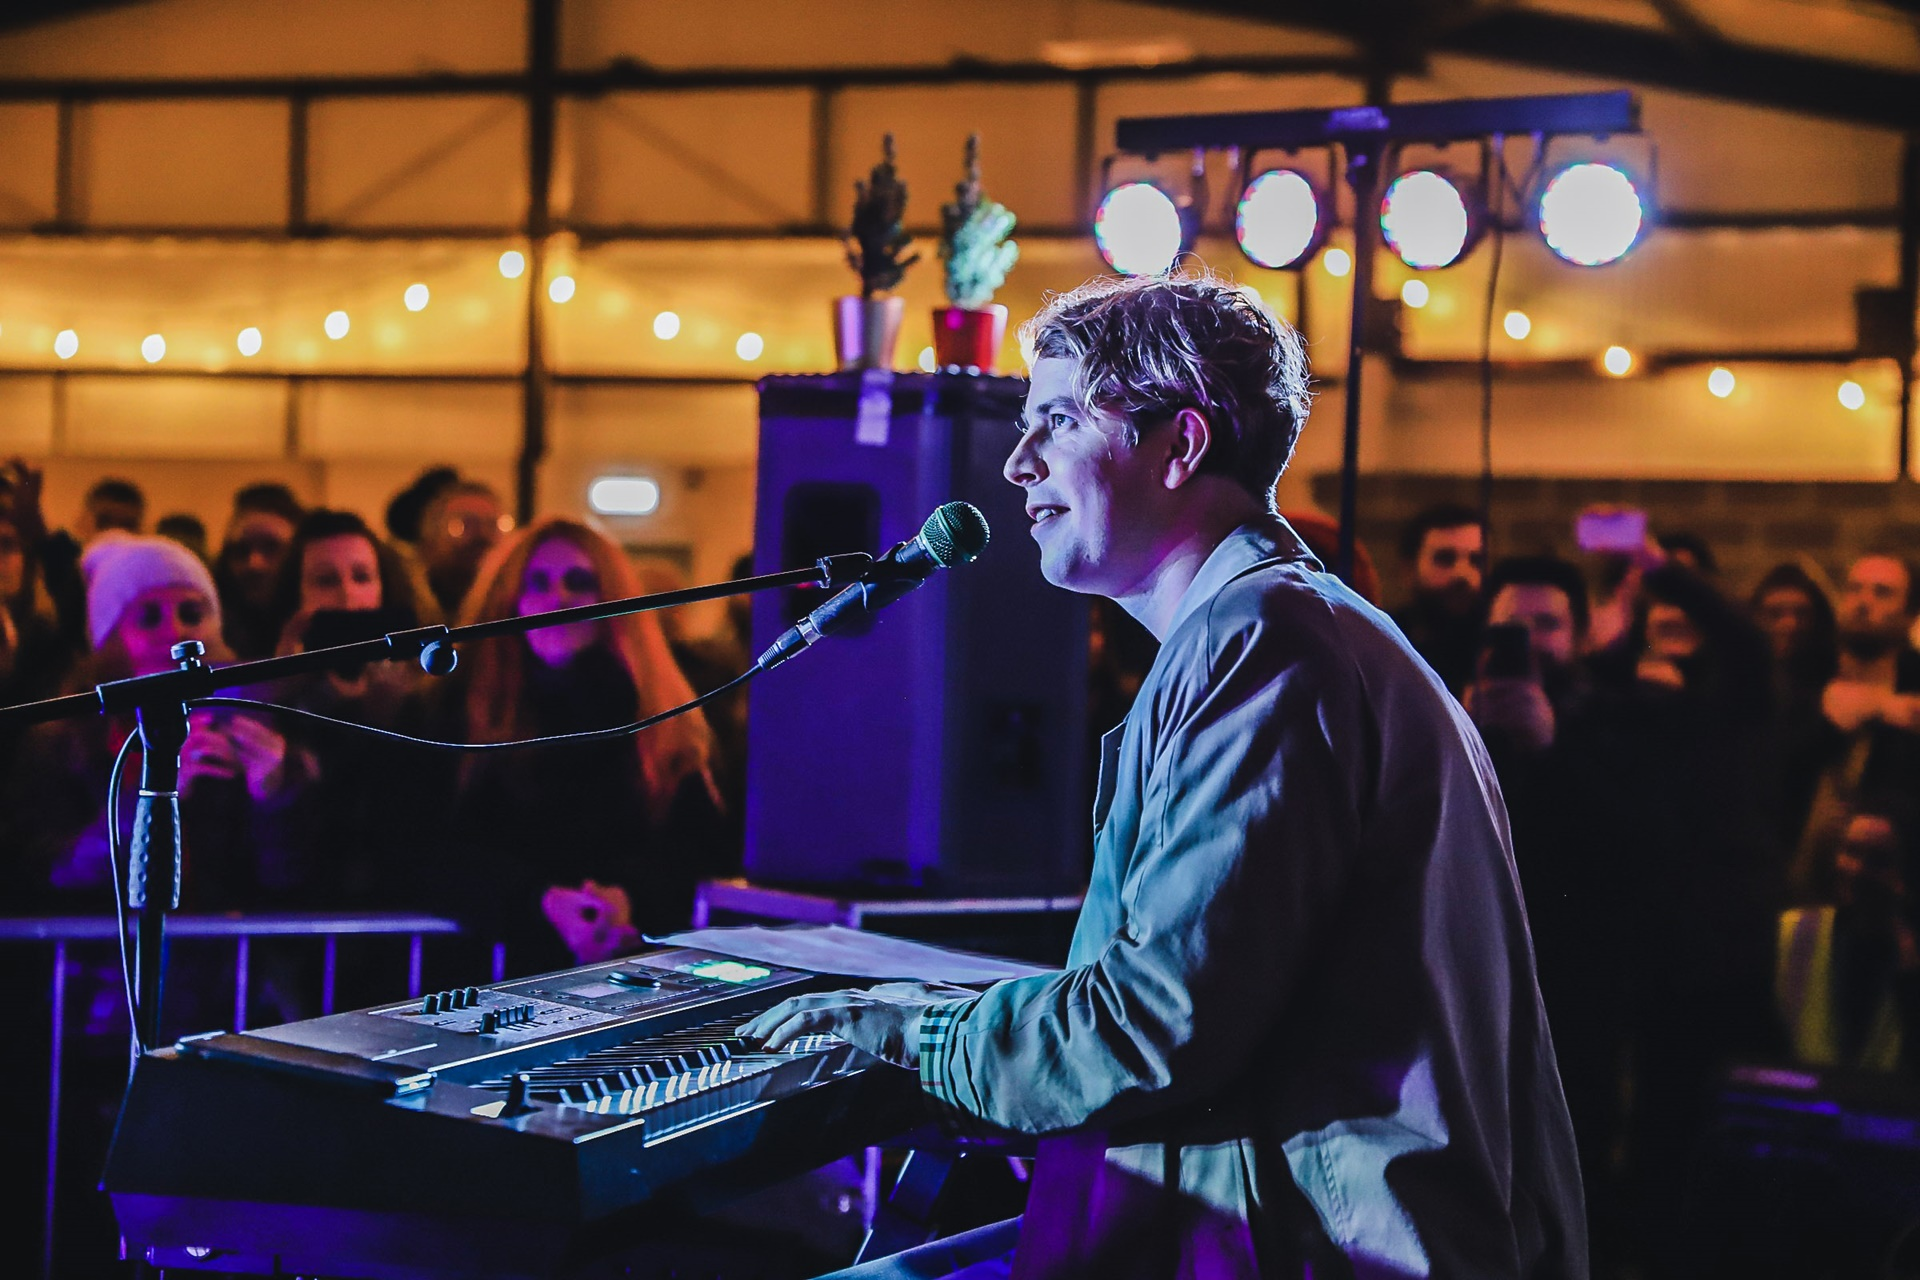 Andy Burrows and Tom Odell perform intimate warehouse gig in aid of region's children's hospice